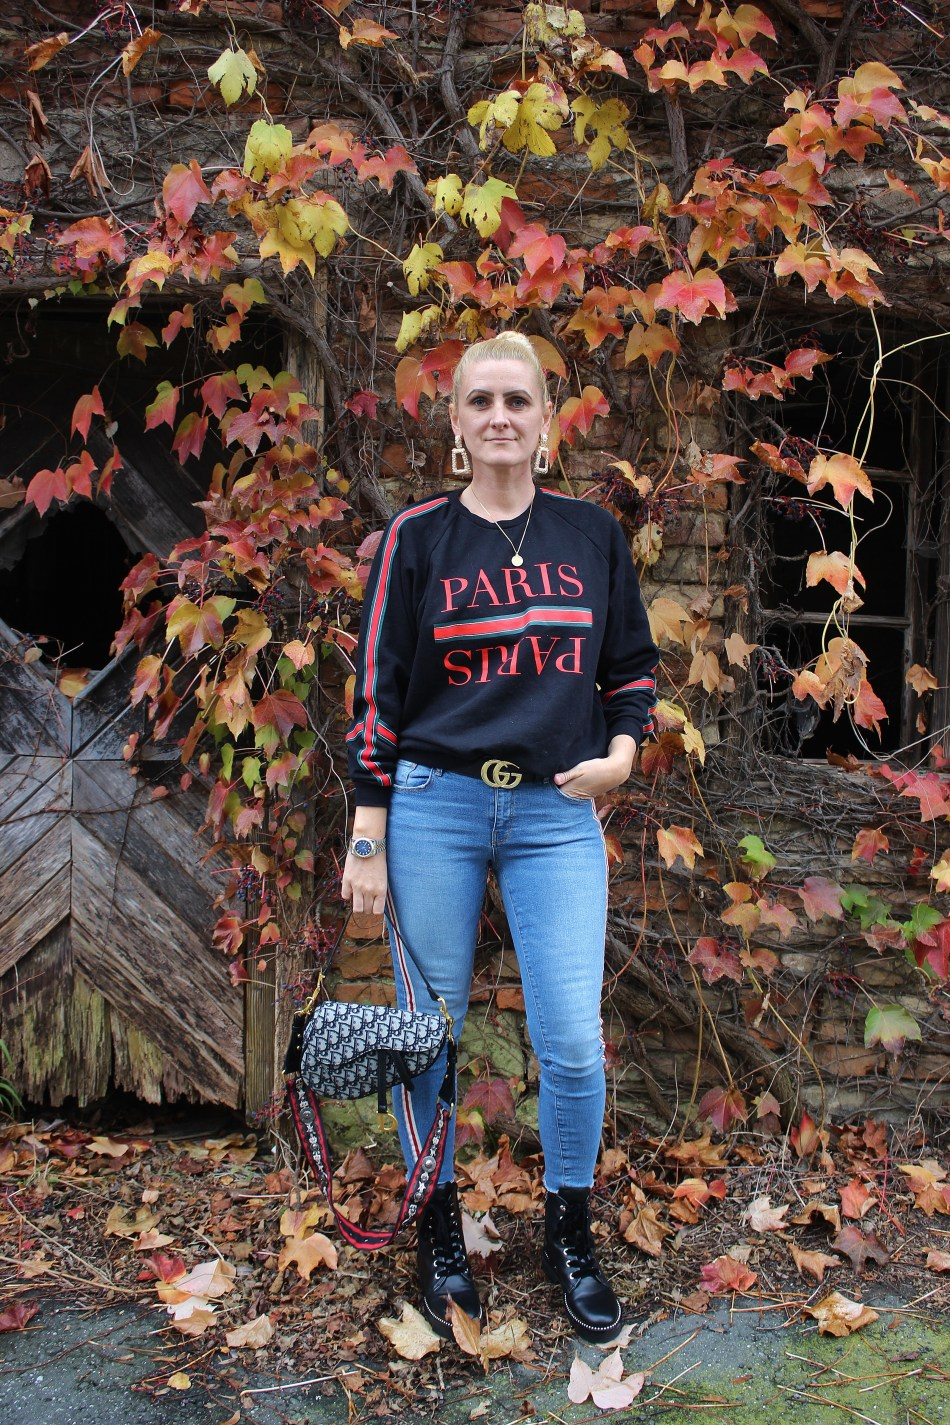 Statement-Sweater-Message-Paris-Druck-Denim-Guccibelt-Gucci-Gürtel-Dior-Saddlebag-Dr.Martens-Boots-Guess-carrieslifestyle-Tamara-Prutsch